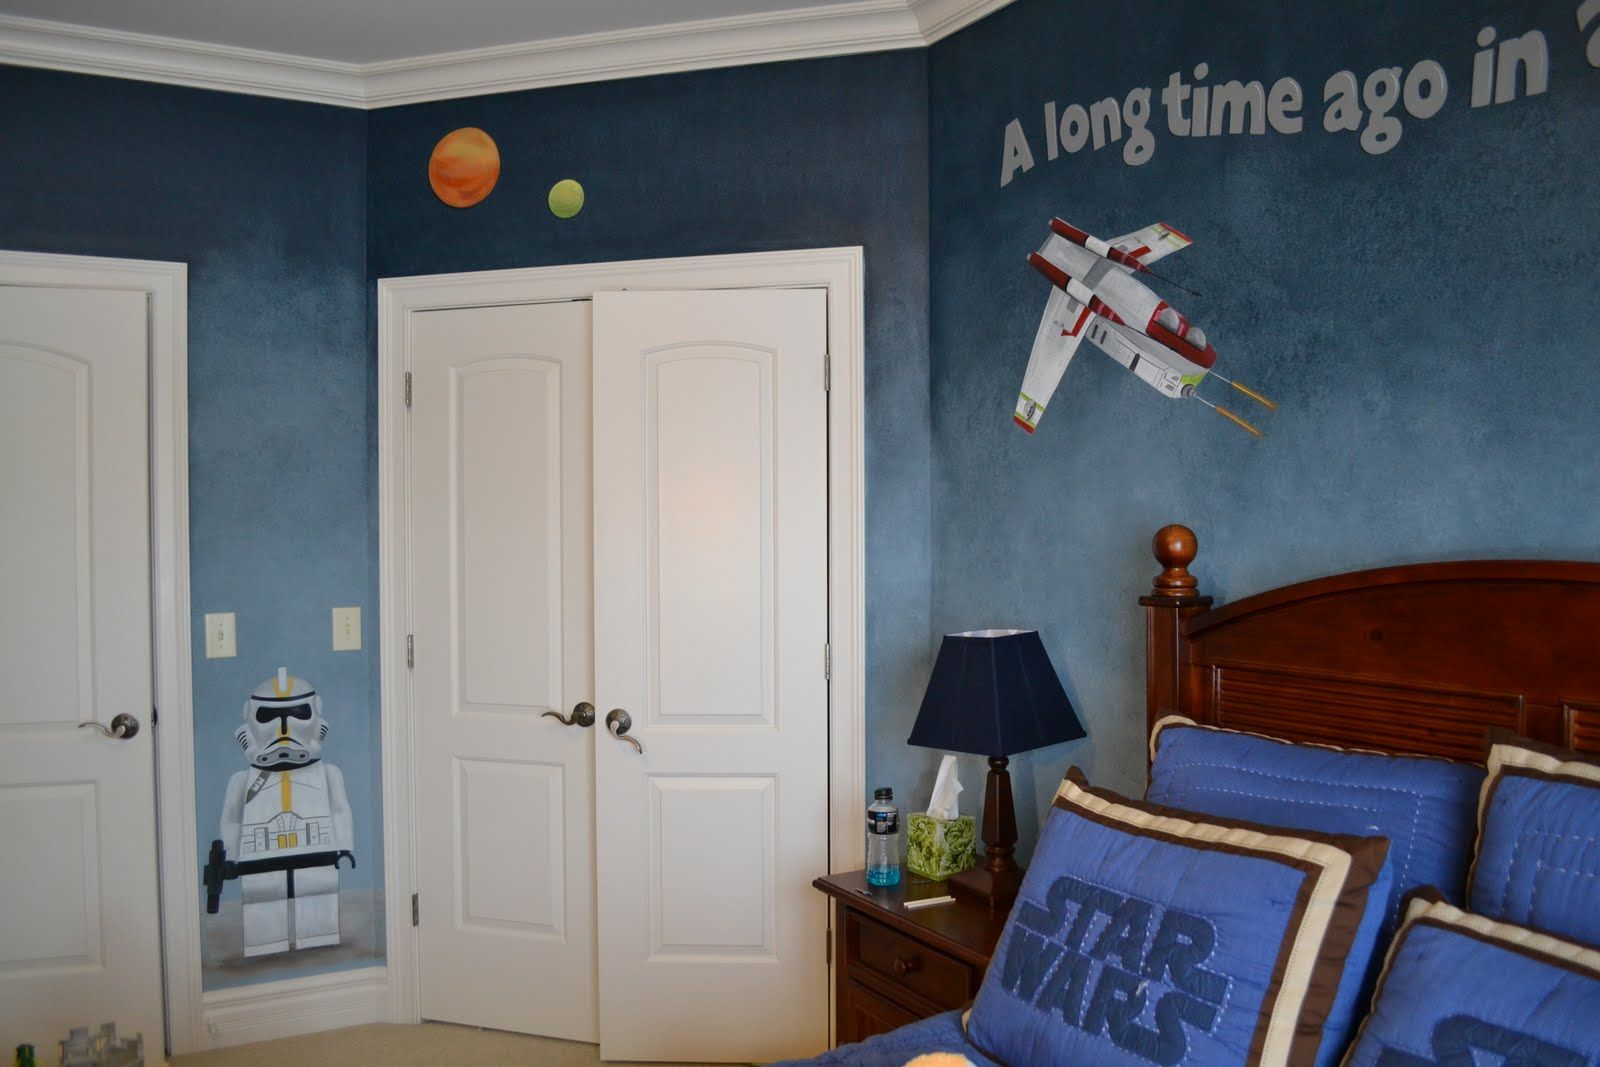 Bedroom wall paint ideas for boys - Boy Bedroom Paint Ideas Boys Bedroom Beautiful Painting Ideas For Boy Bedroom Design Ideas